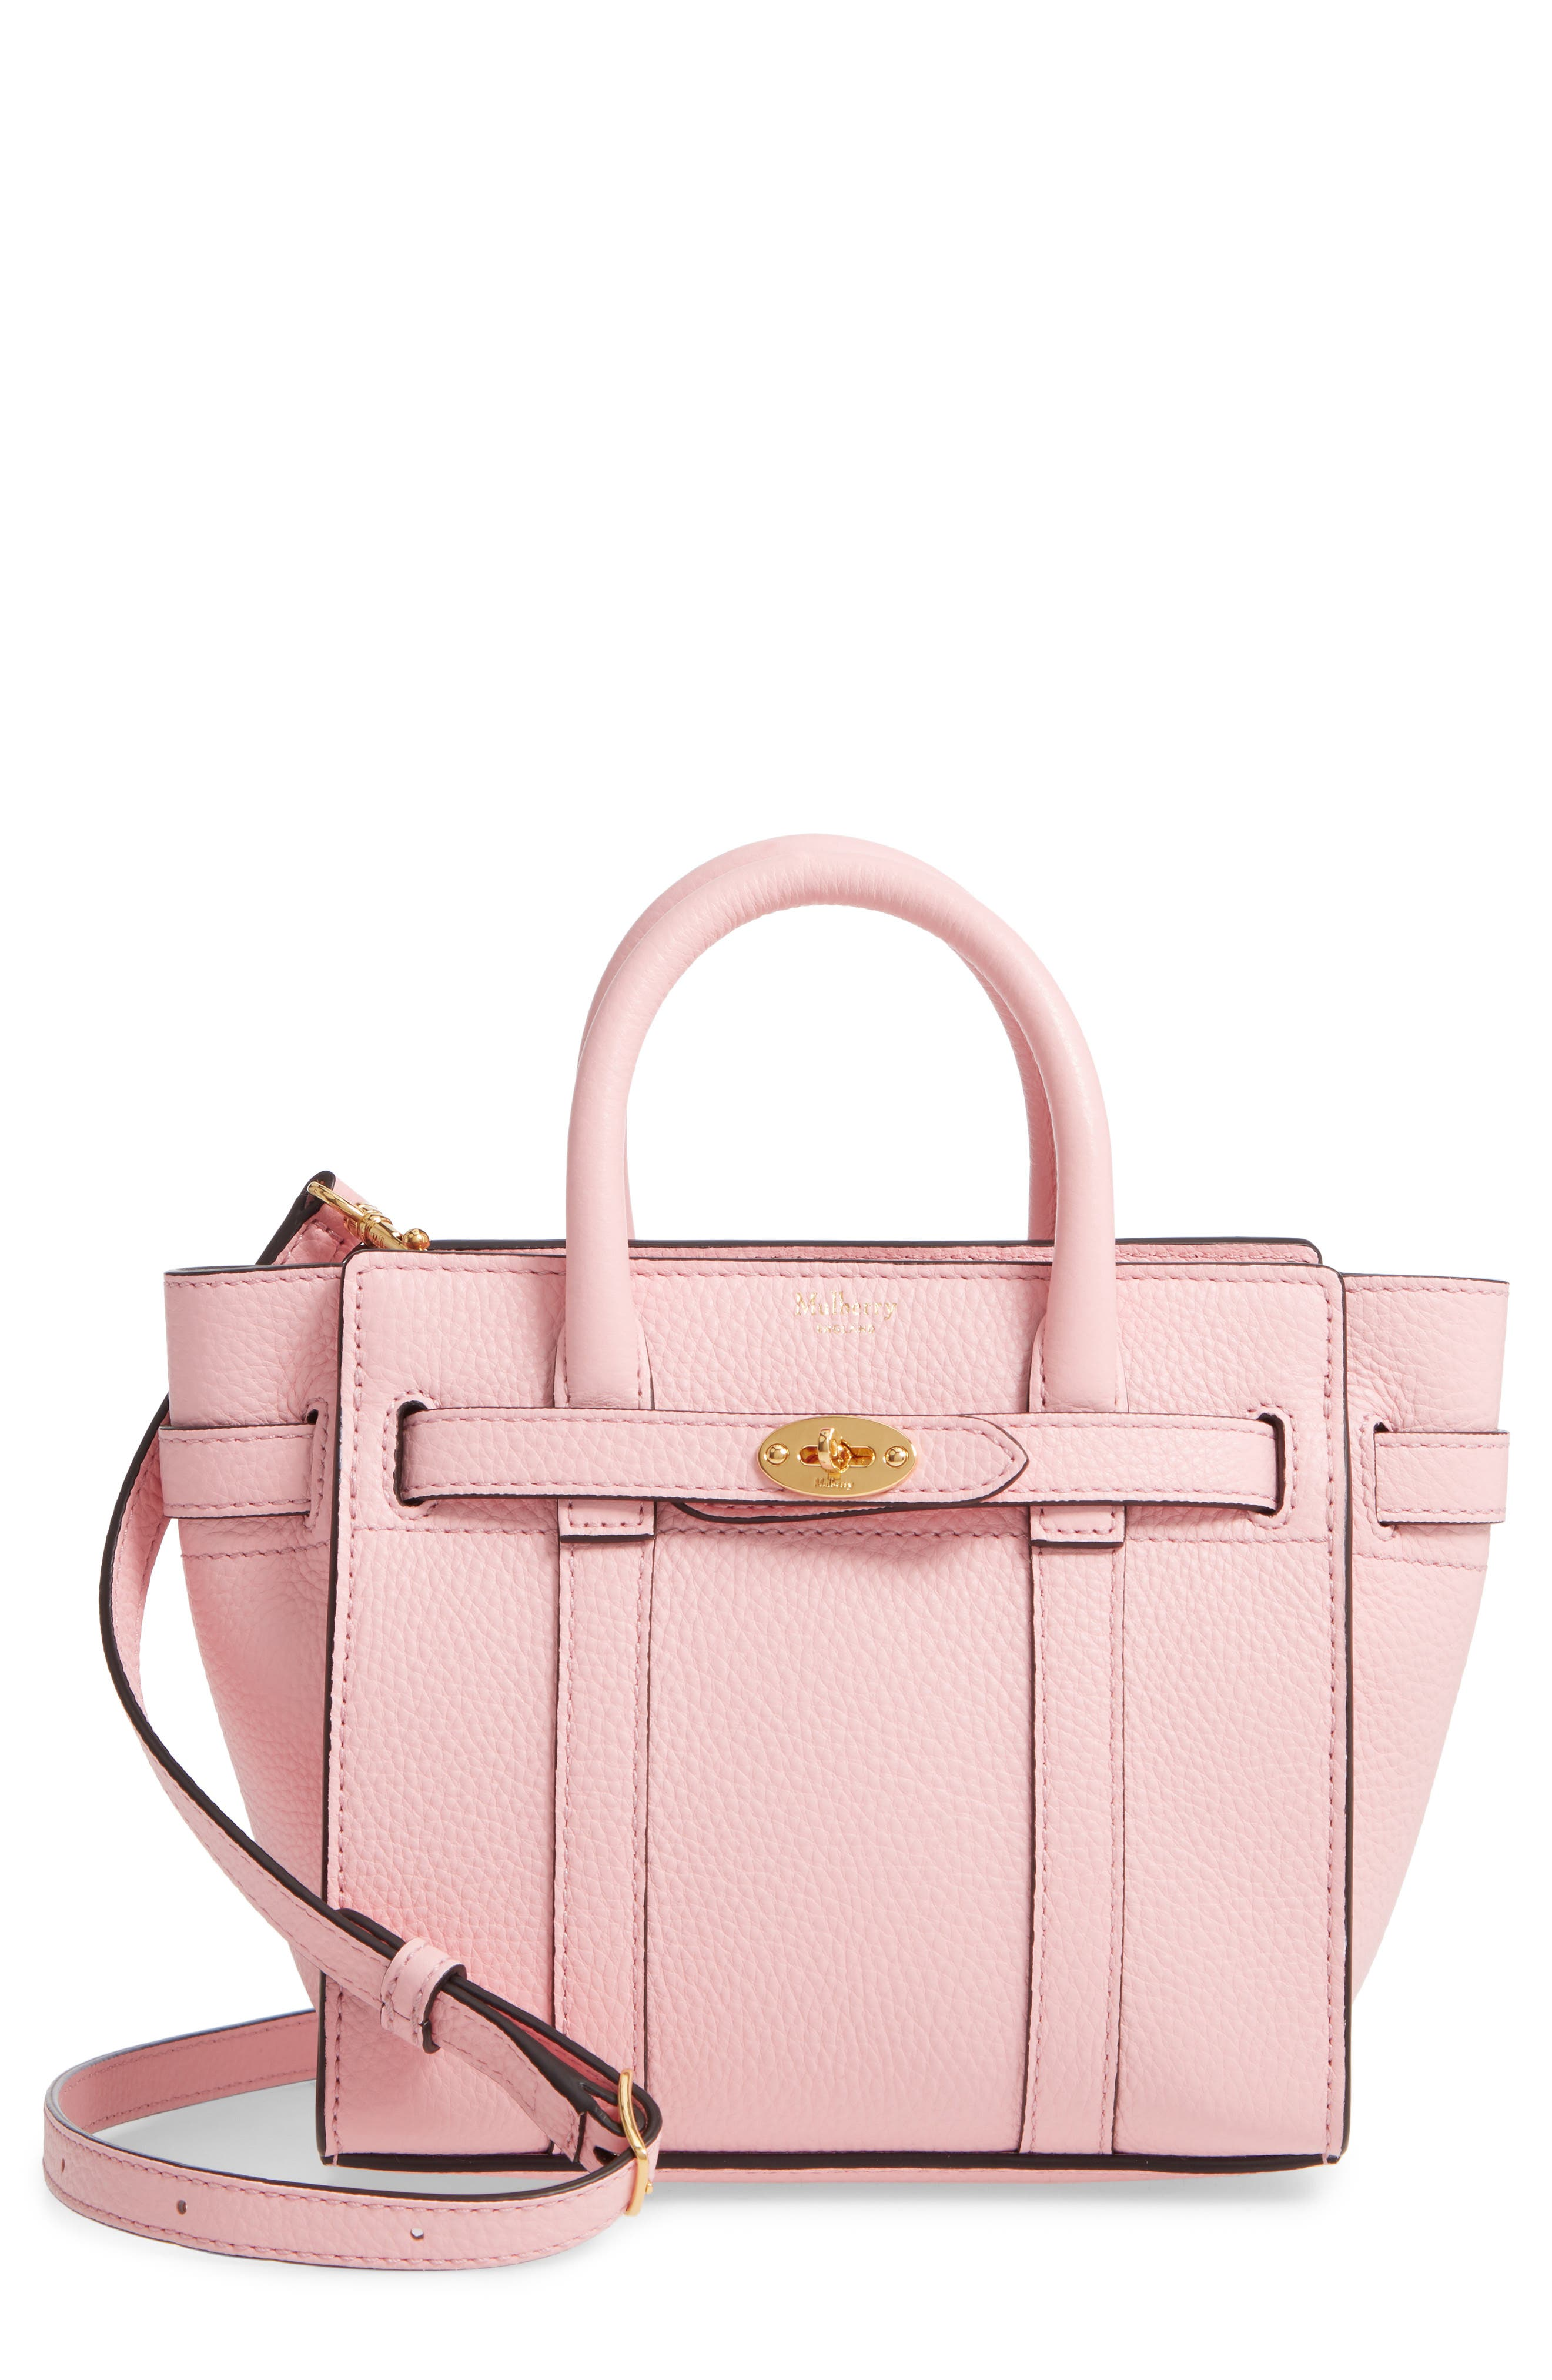 MULBERRY Micro Bayswater Leather Satchel - Pink in Sorbet Pink